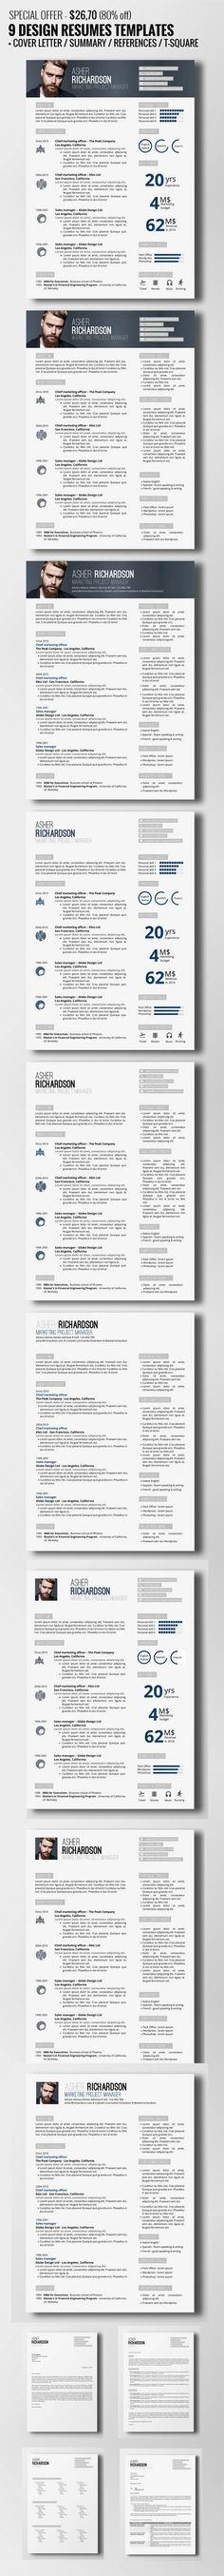 435 best Resume images on Pinterest Resume design, Design resume - software designer resume